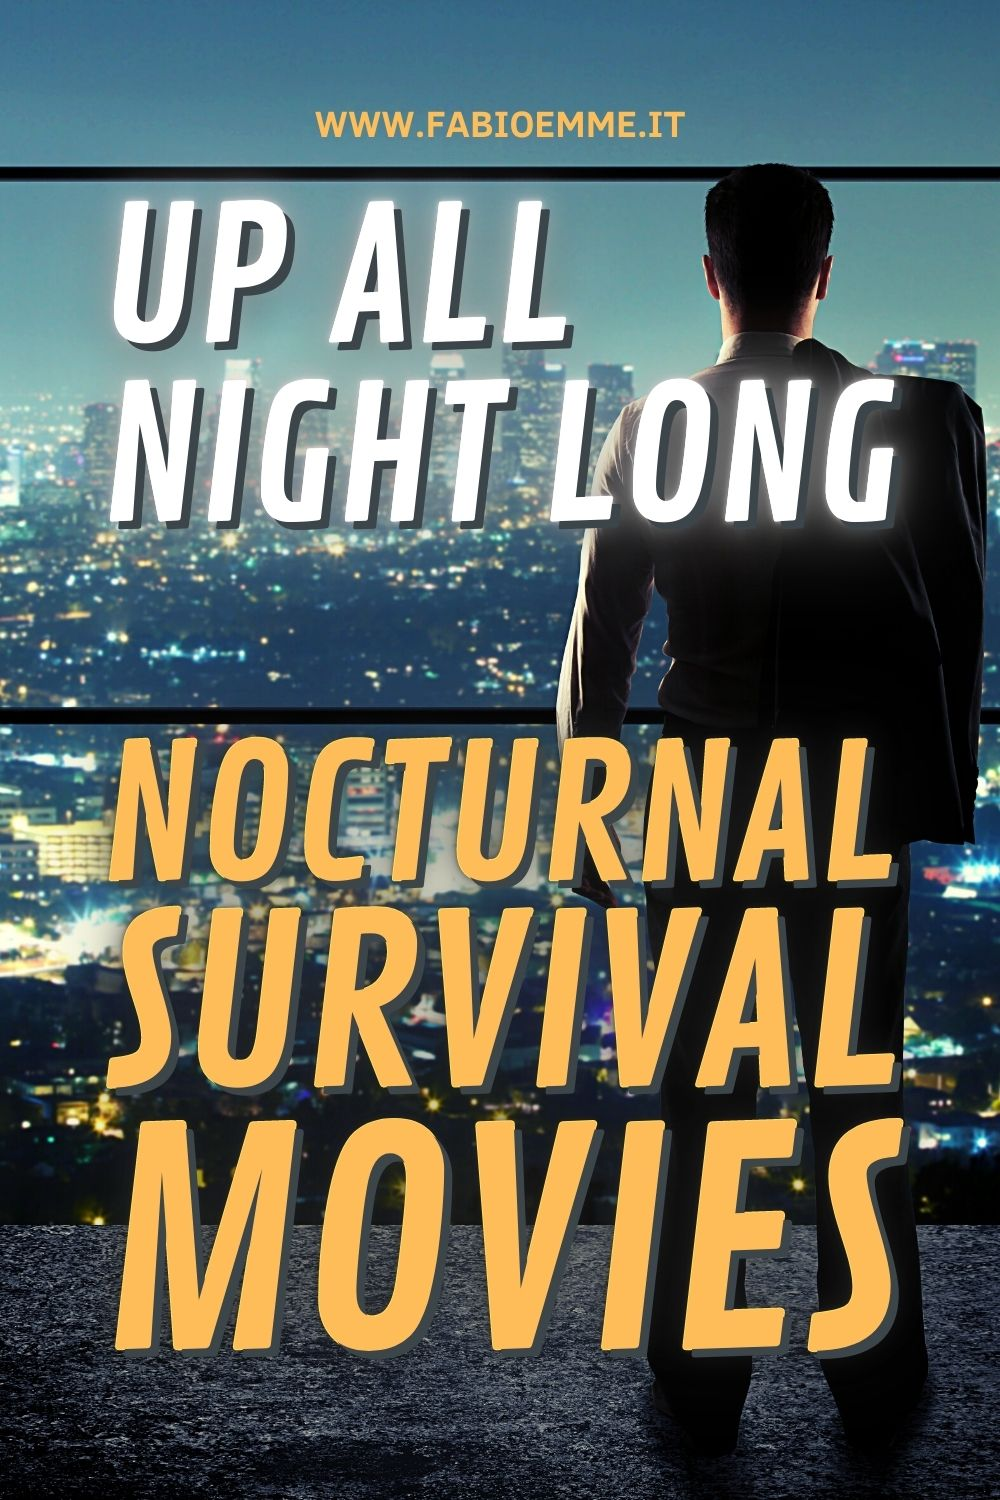 Want to stay up all night long watching some great survival movies? We have here just 3 different movies waiting for you. #MOVIES